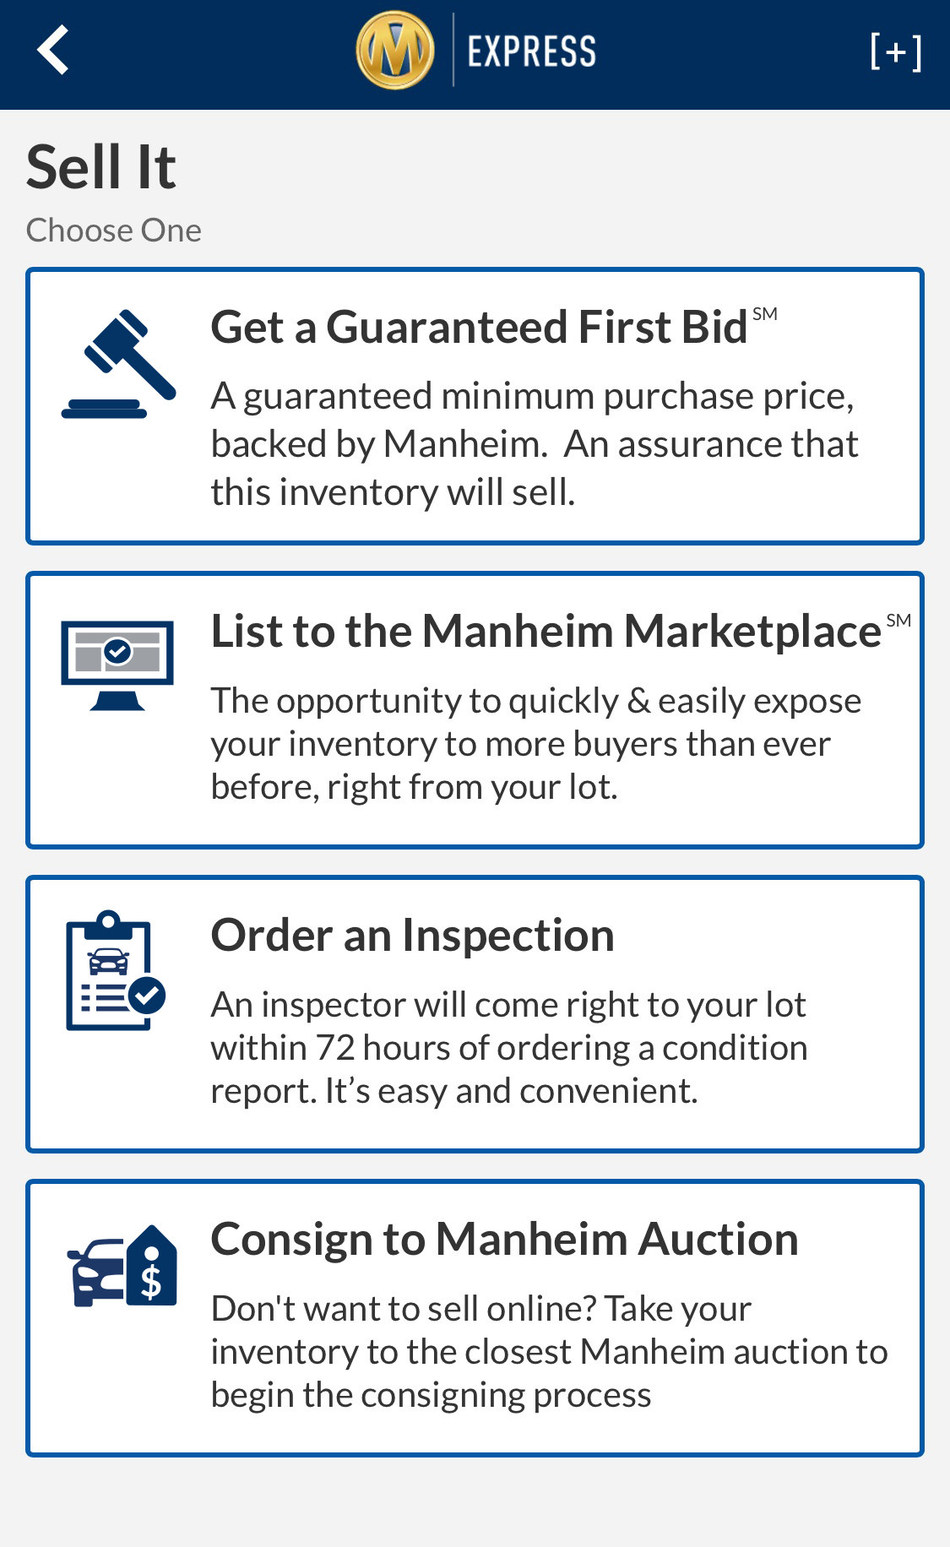 Manheim Express: New Mobile Application Offers Dealers Fast, Easy and Self Service Way to List and Sell Inventory in the Manheim Marketplace